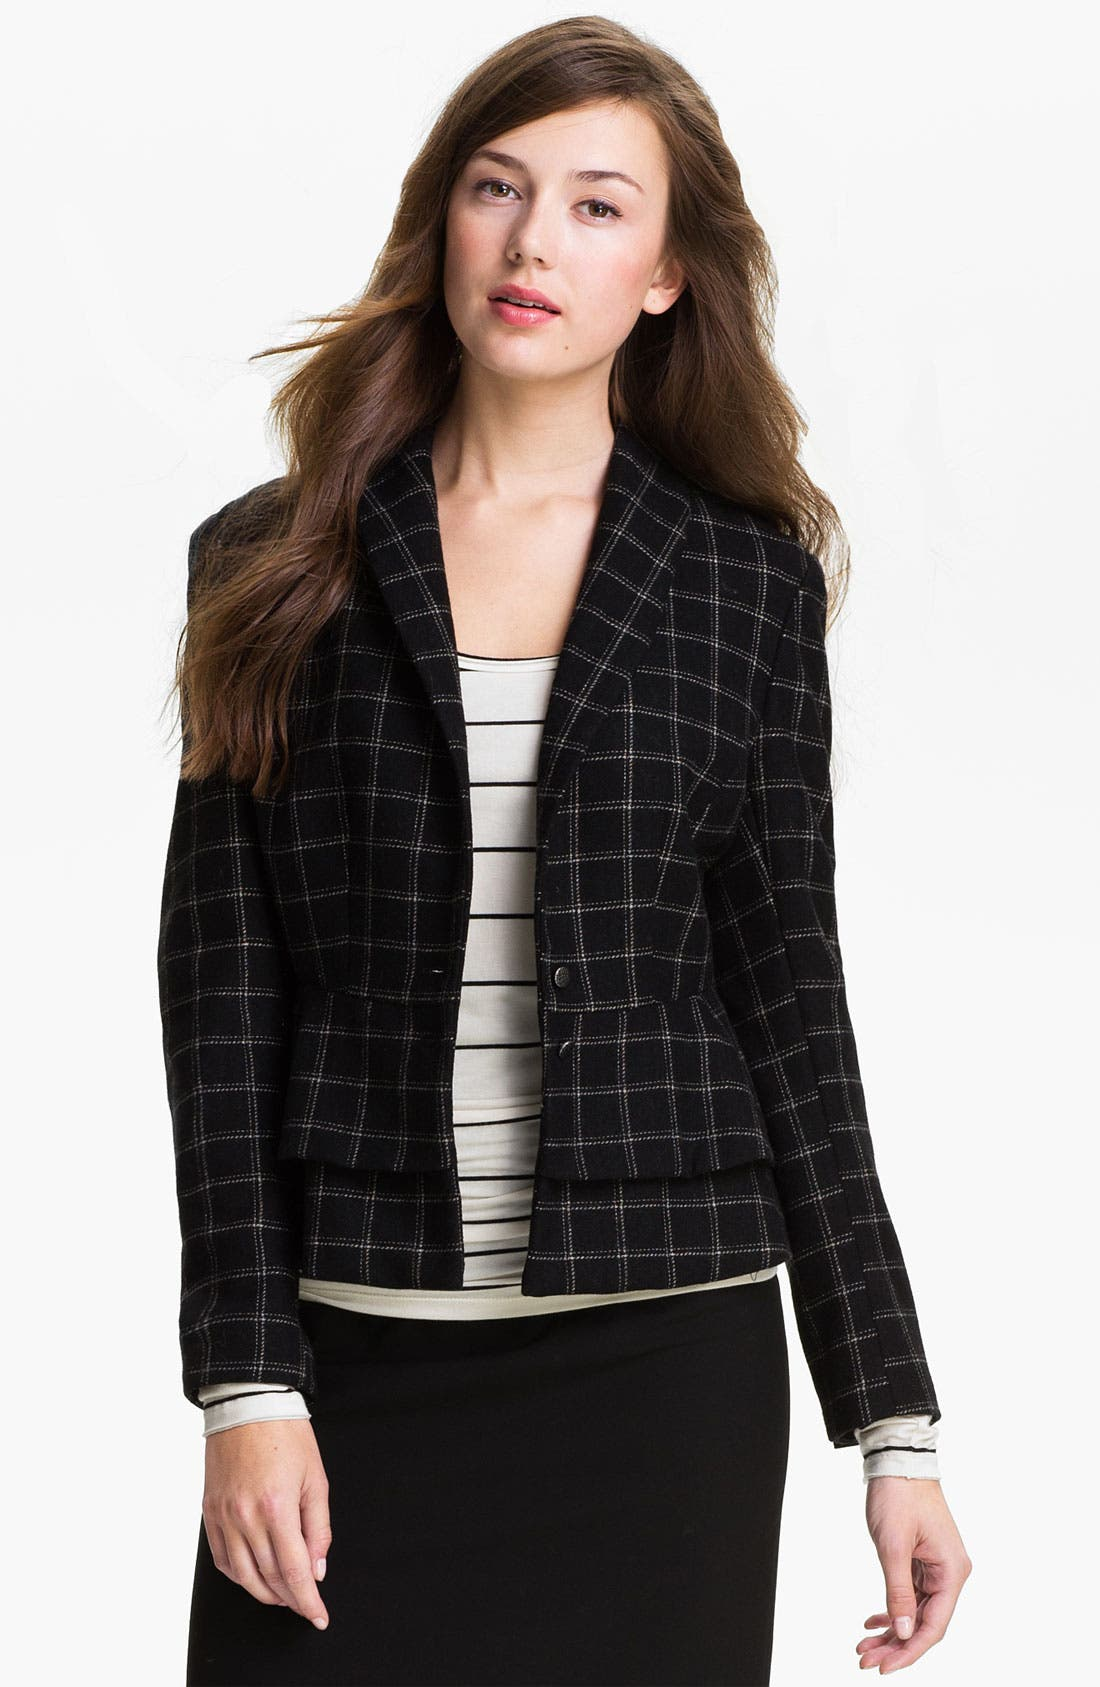 Main Image - Max & Mia Plaid Peplum Jacket